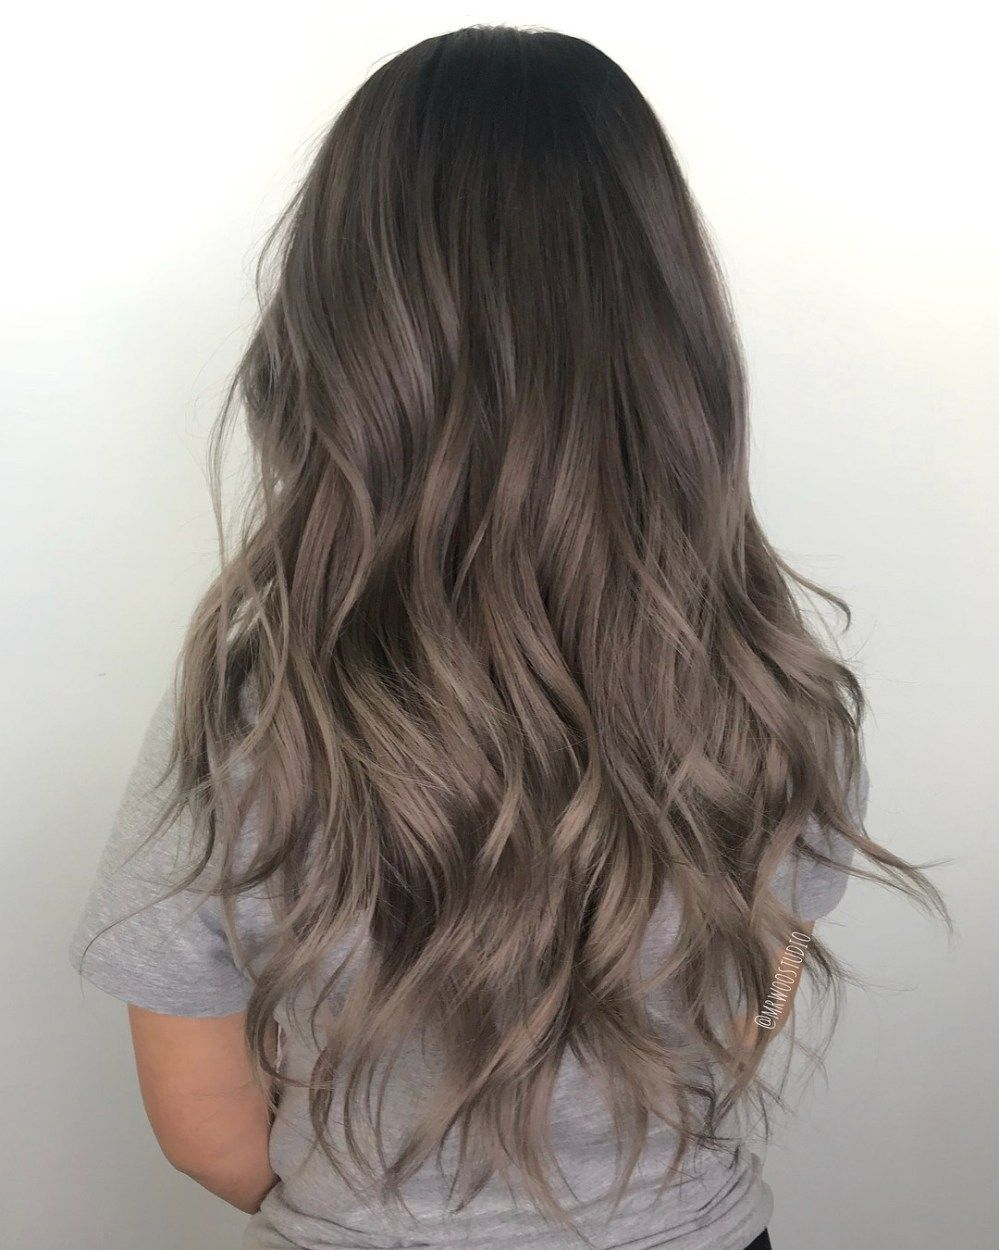 60 Shades Of Grey Silver And White Highlights For Eternal Youth Ash Brown Hair Color Hair Styles Brunette Hair Color